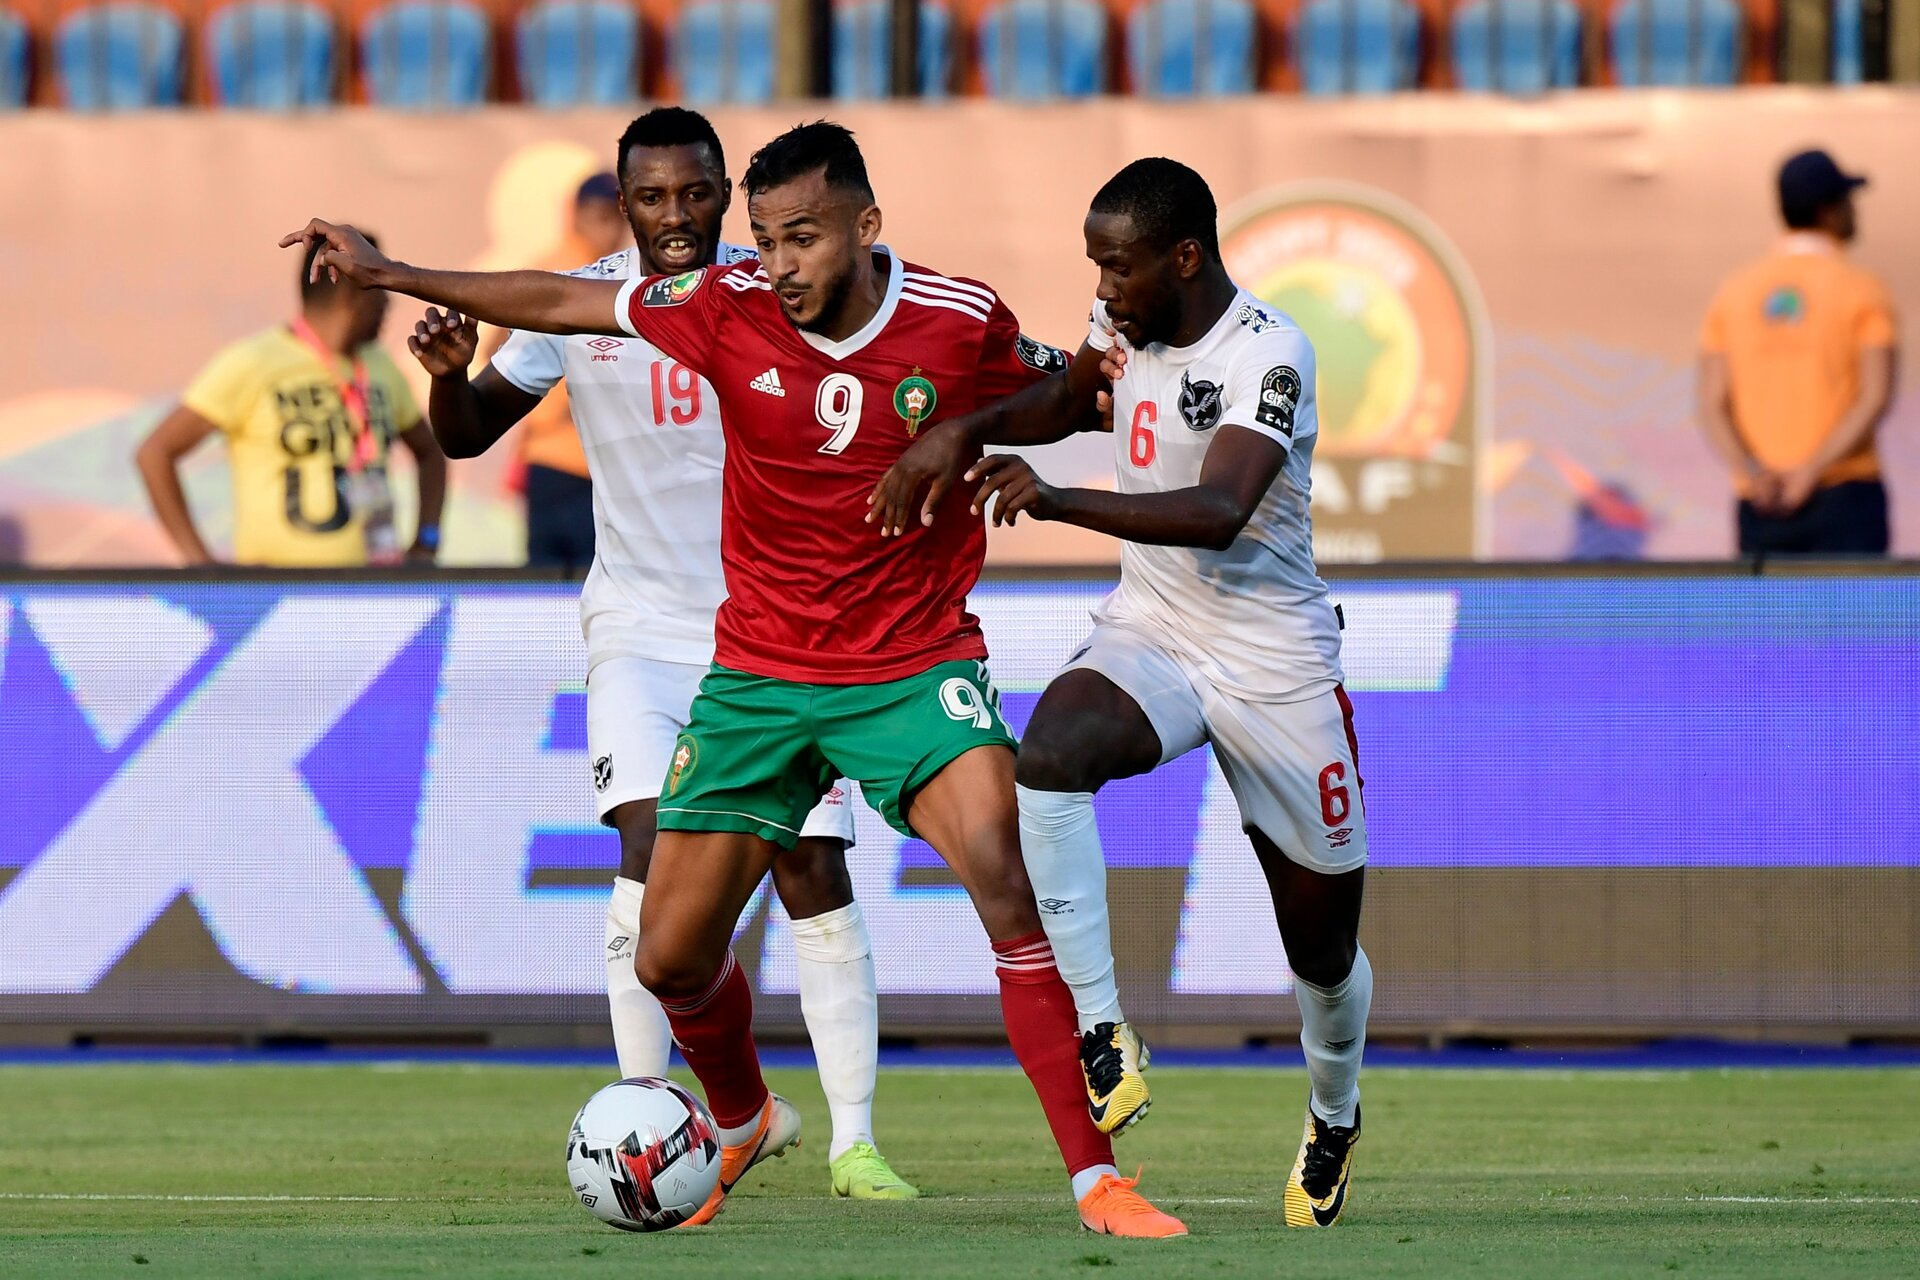 Morocco's forward Sofiane Boufal (C) is marked by Namibia's midfielder Petrus Shitembi (L) and Namibia's midfielder Larry Horaeb during the 2019 Africa Cup of Nations (CAN) football match between Morocco and Namibia at the Al Salam Stadium in Cairo on June 23, 2019. (Photo by JAVIER SORIANO / AFP)        (Photo credit should read JAVIER SORIANO/AFP/Getty Images)